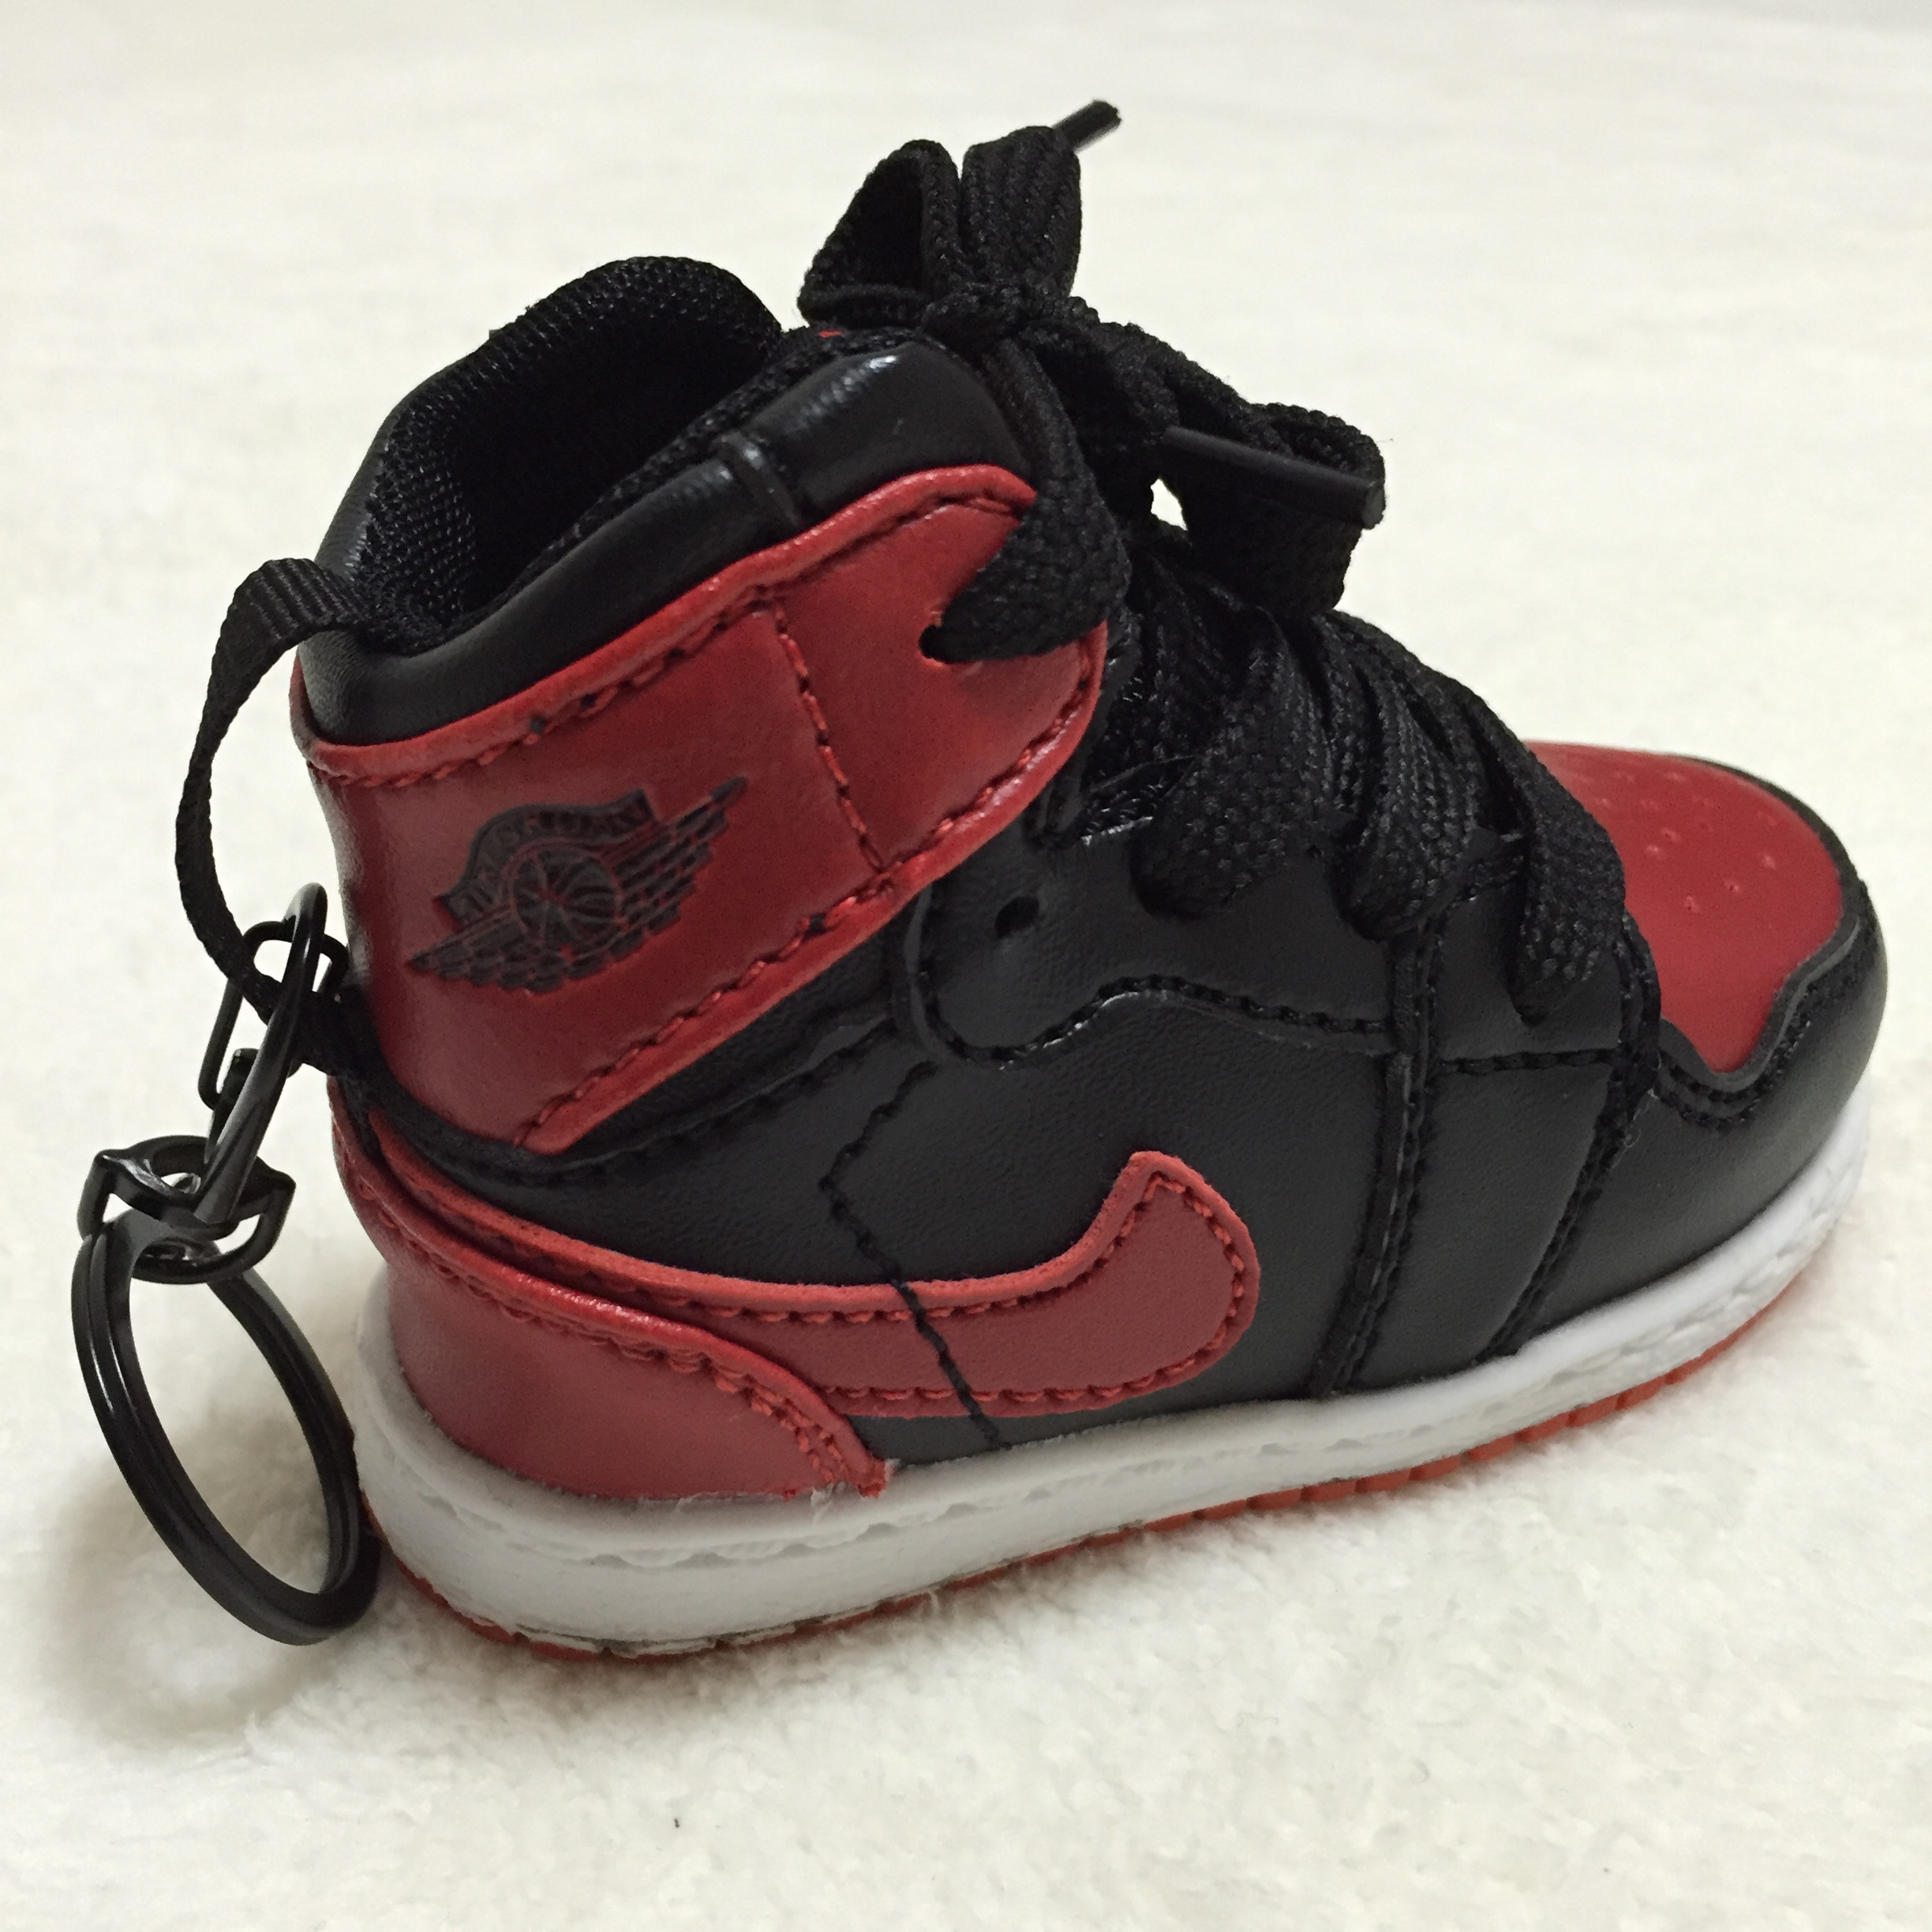 nike-air-jordan-1-bred-fragment-design-type-mobile-battery-key-holder